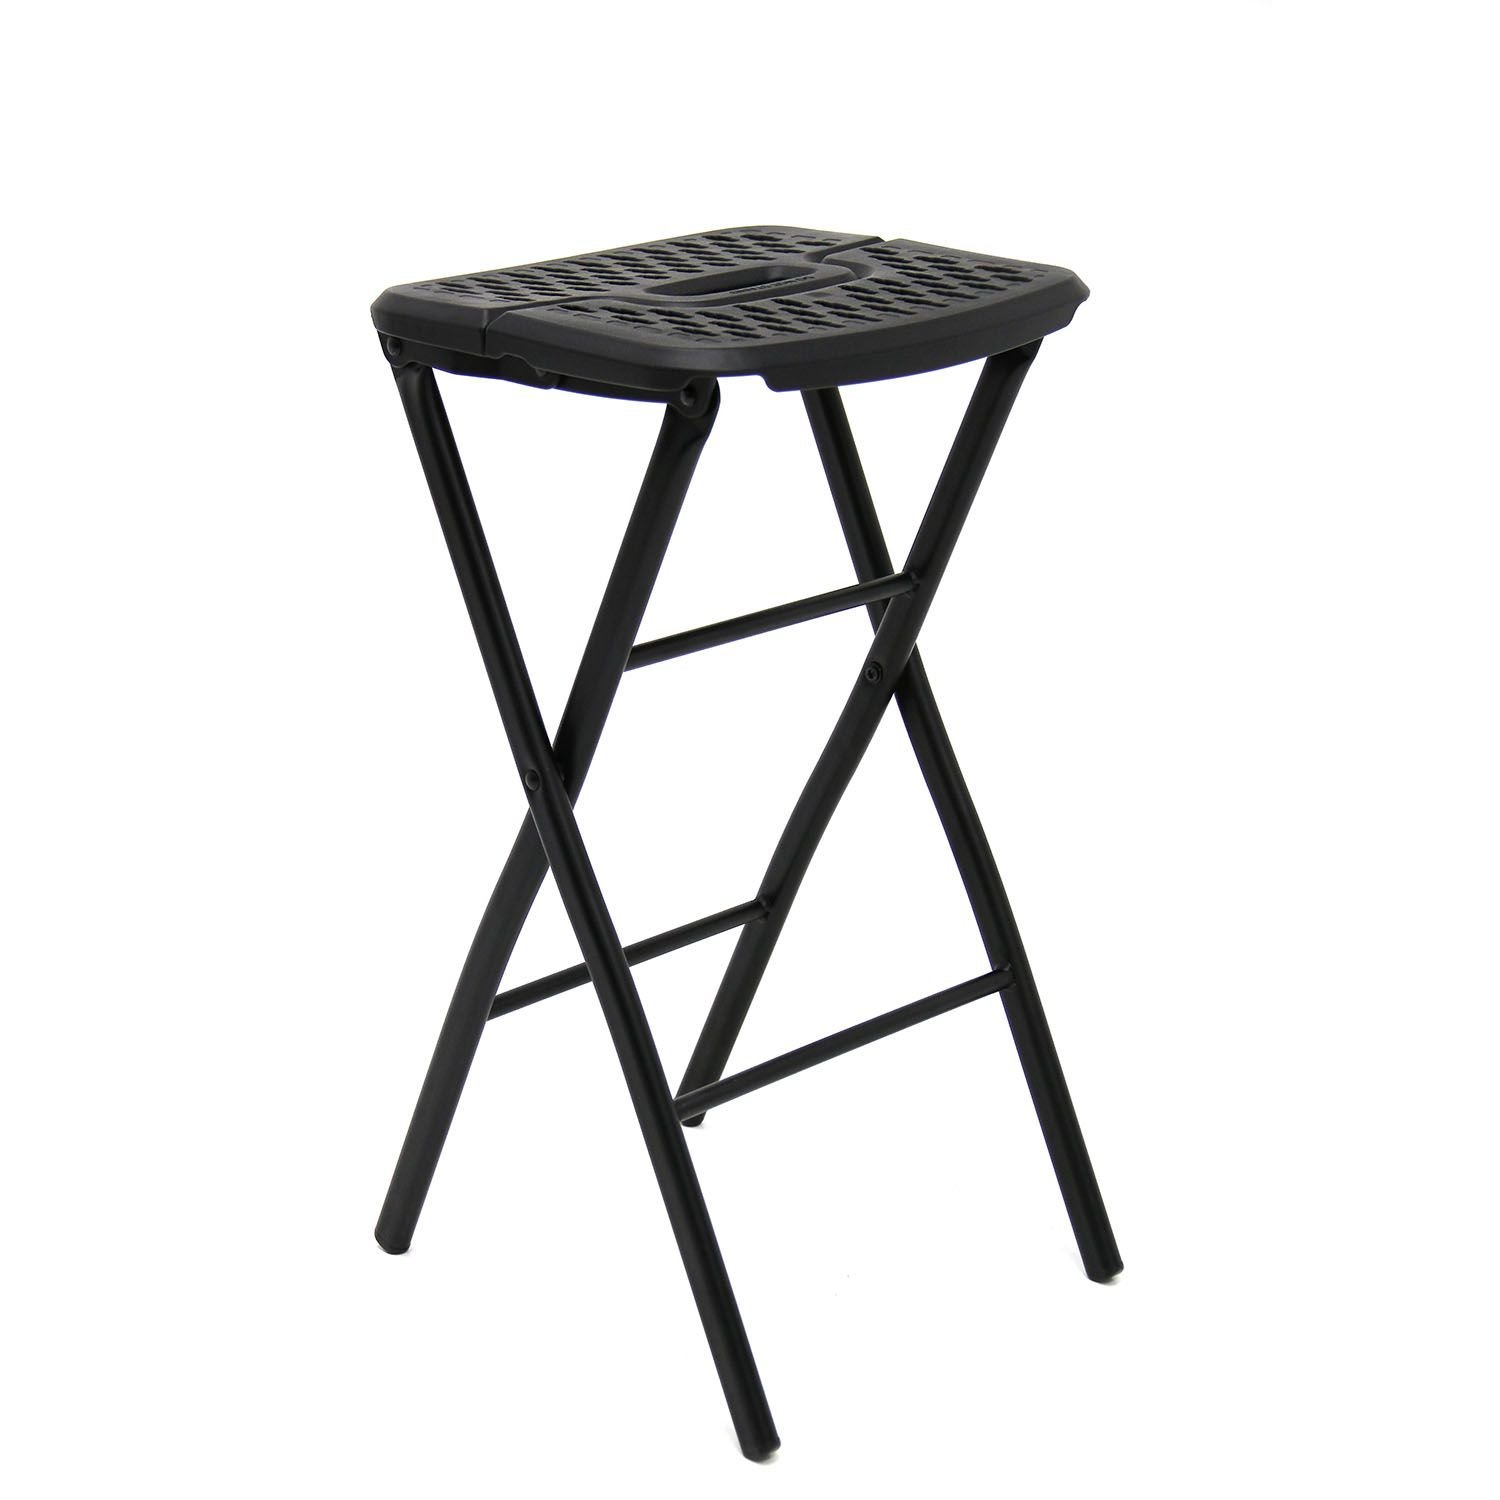 equipment therapy stool shop product stools folding seating grey massage affinity body